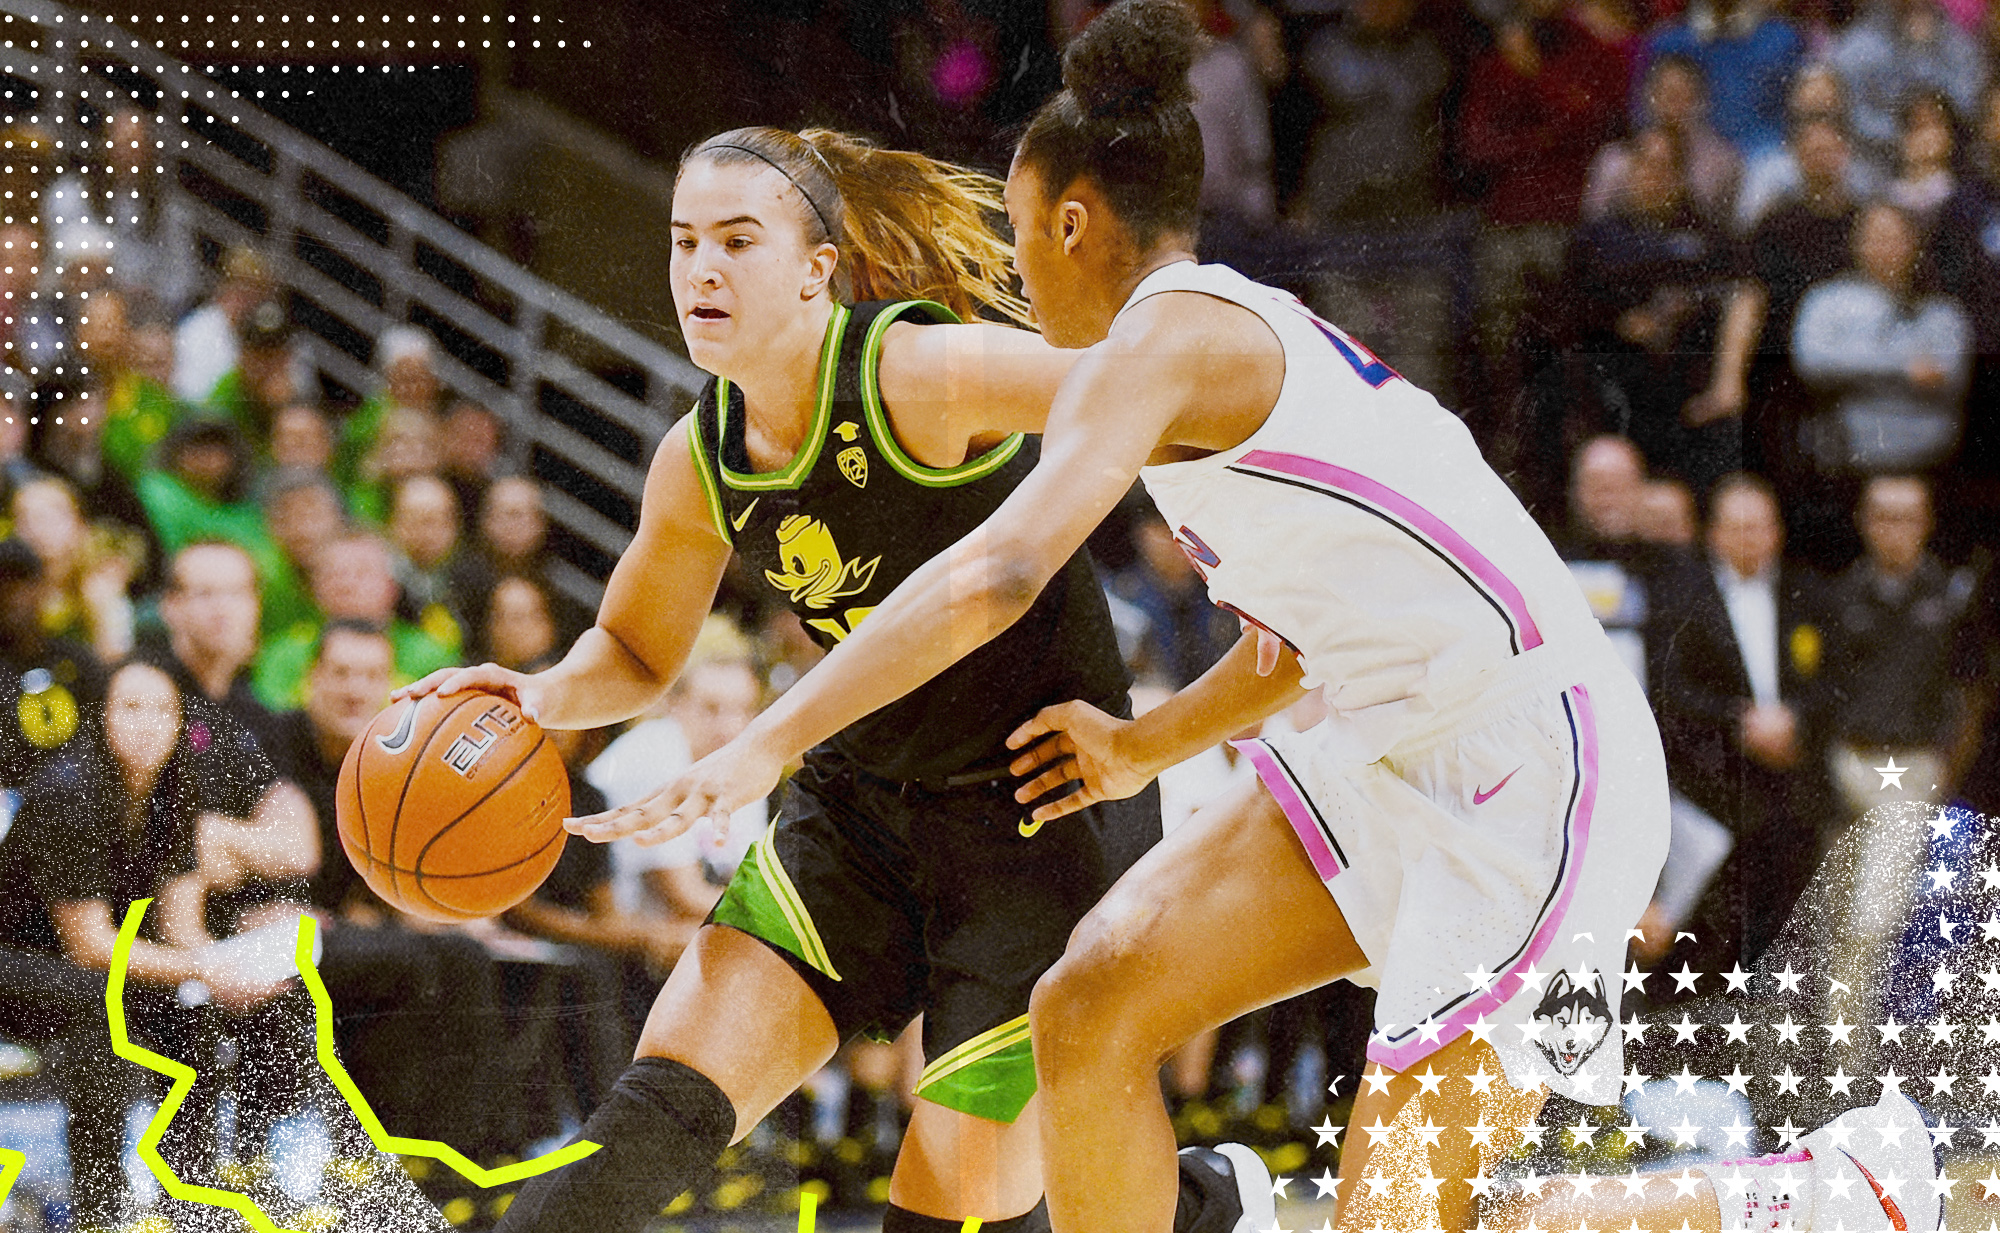 Oregon Ducks guard Sabrina Ionescu handles the ball while defended by UConn Huskies guard Aubrey Griffin.